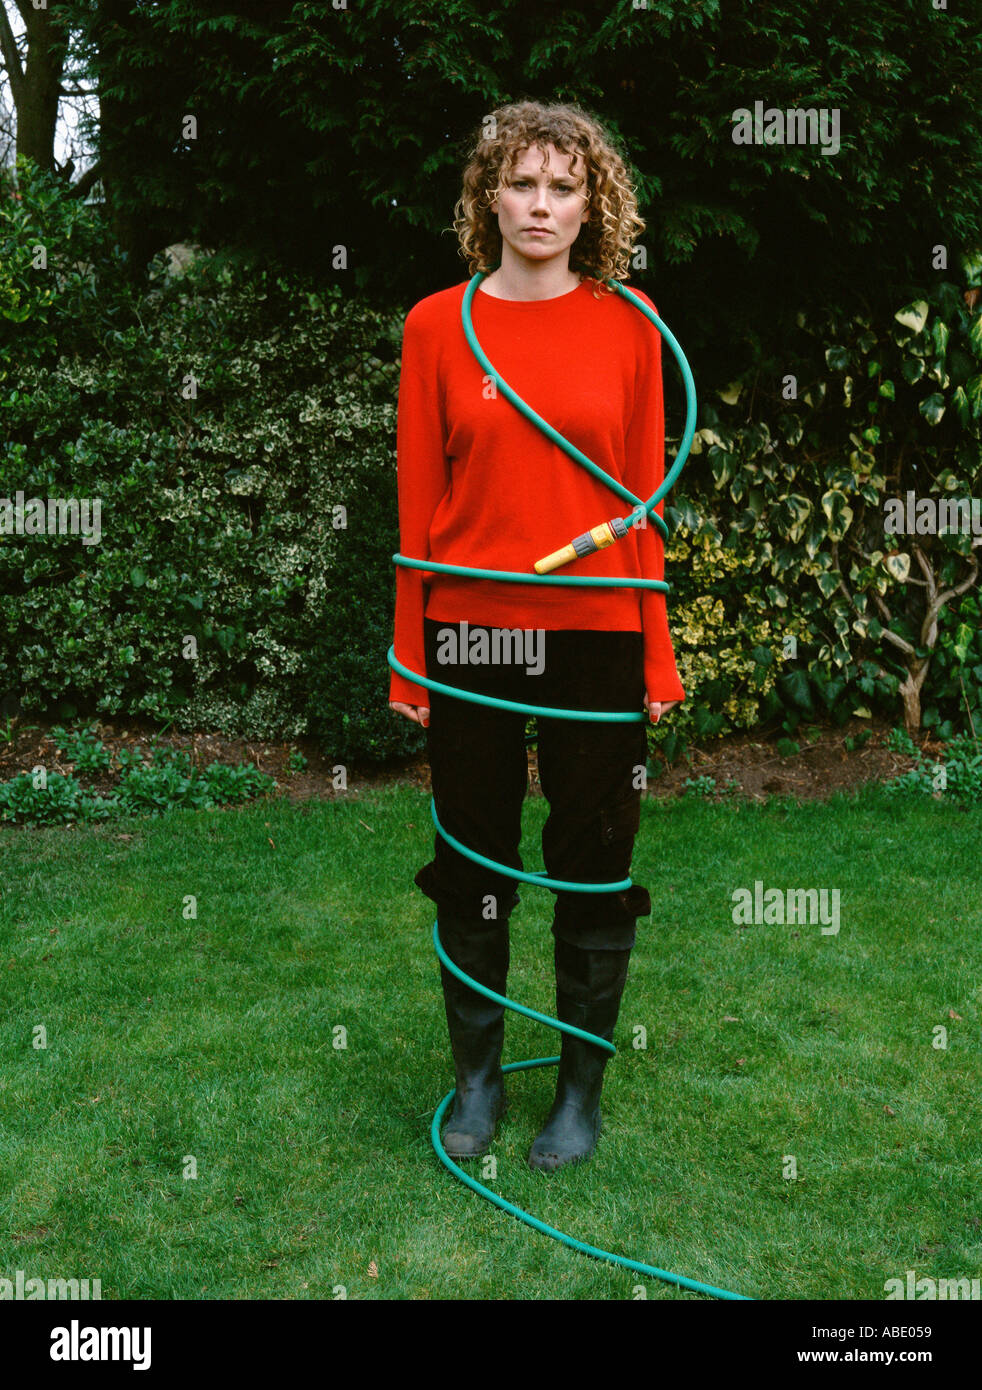 Woman wrapped in a hosepipe - Stock Image